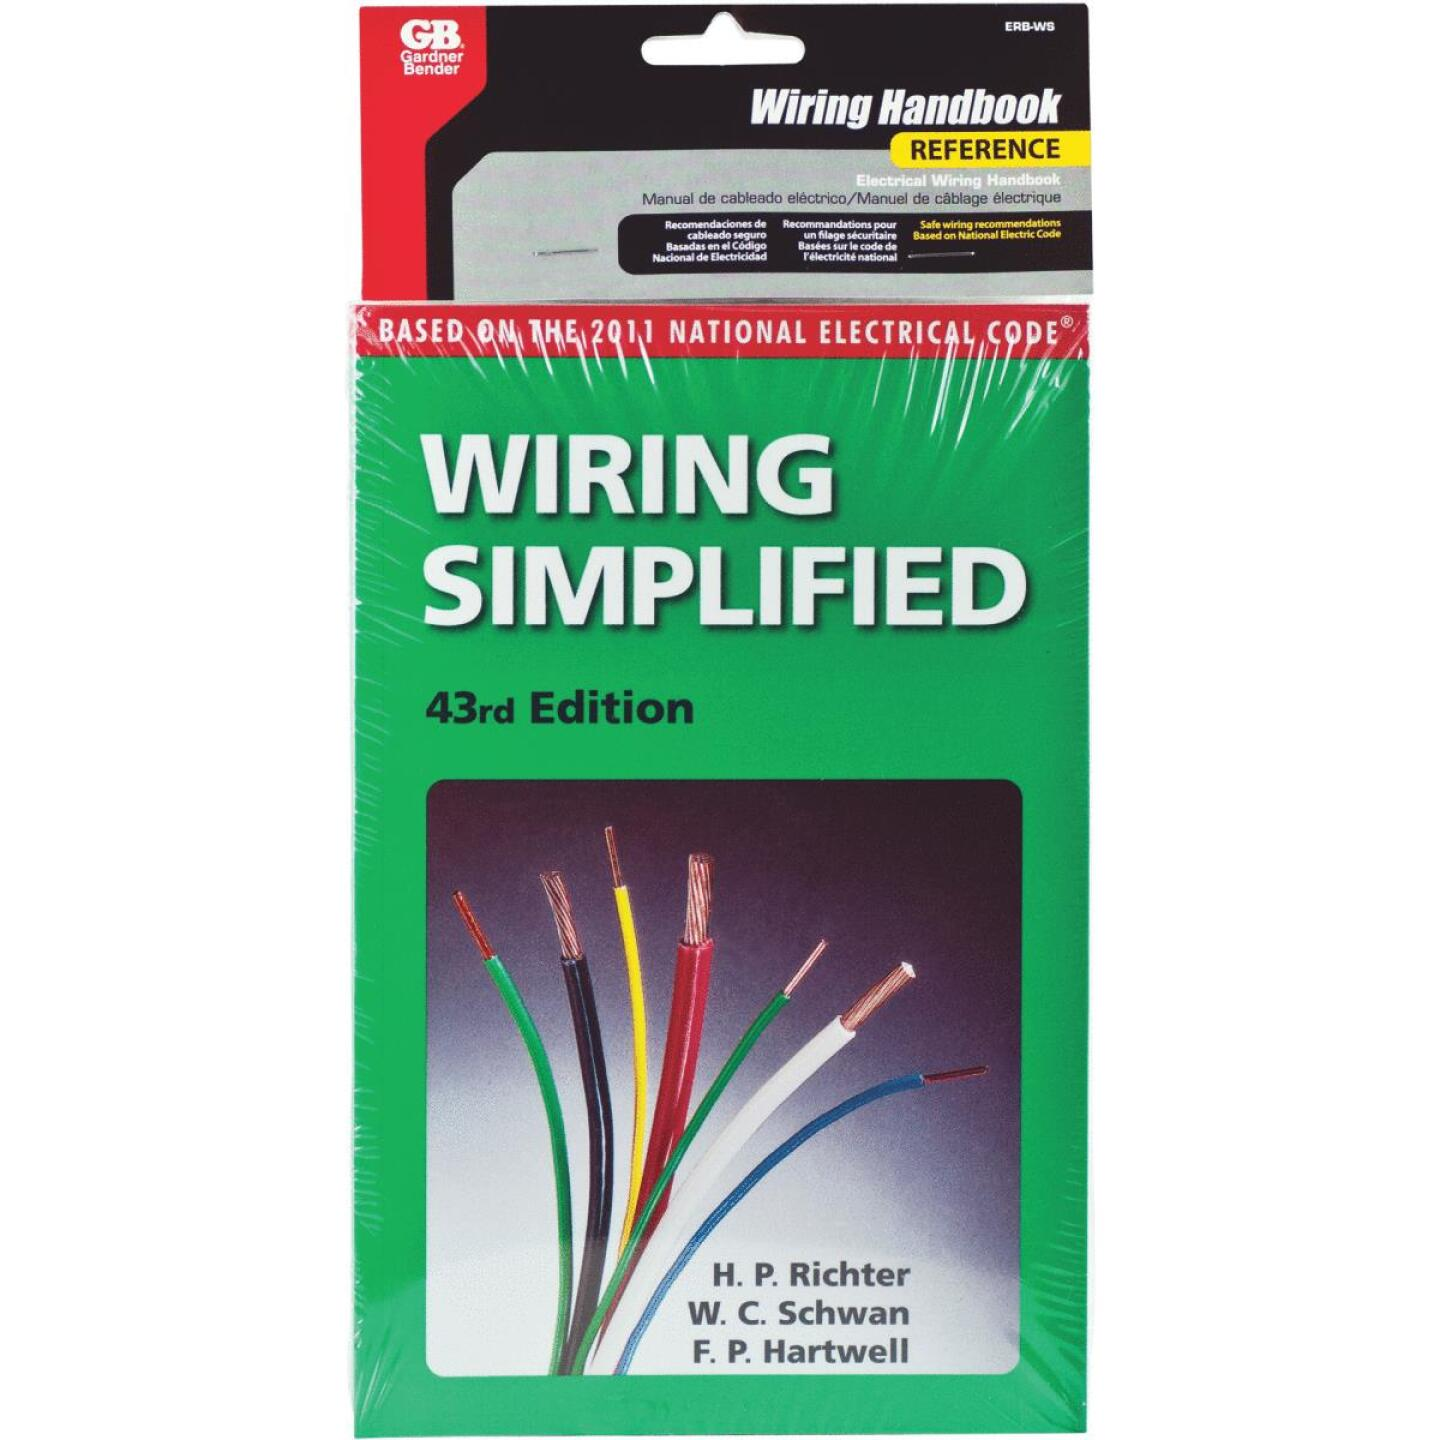 Gardner Bender Electrical Wiring Simplified Pocket Reference Book Image 1